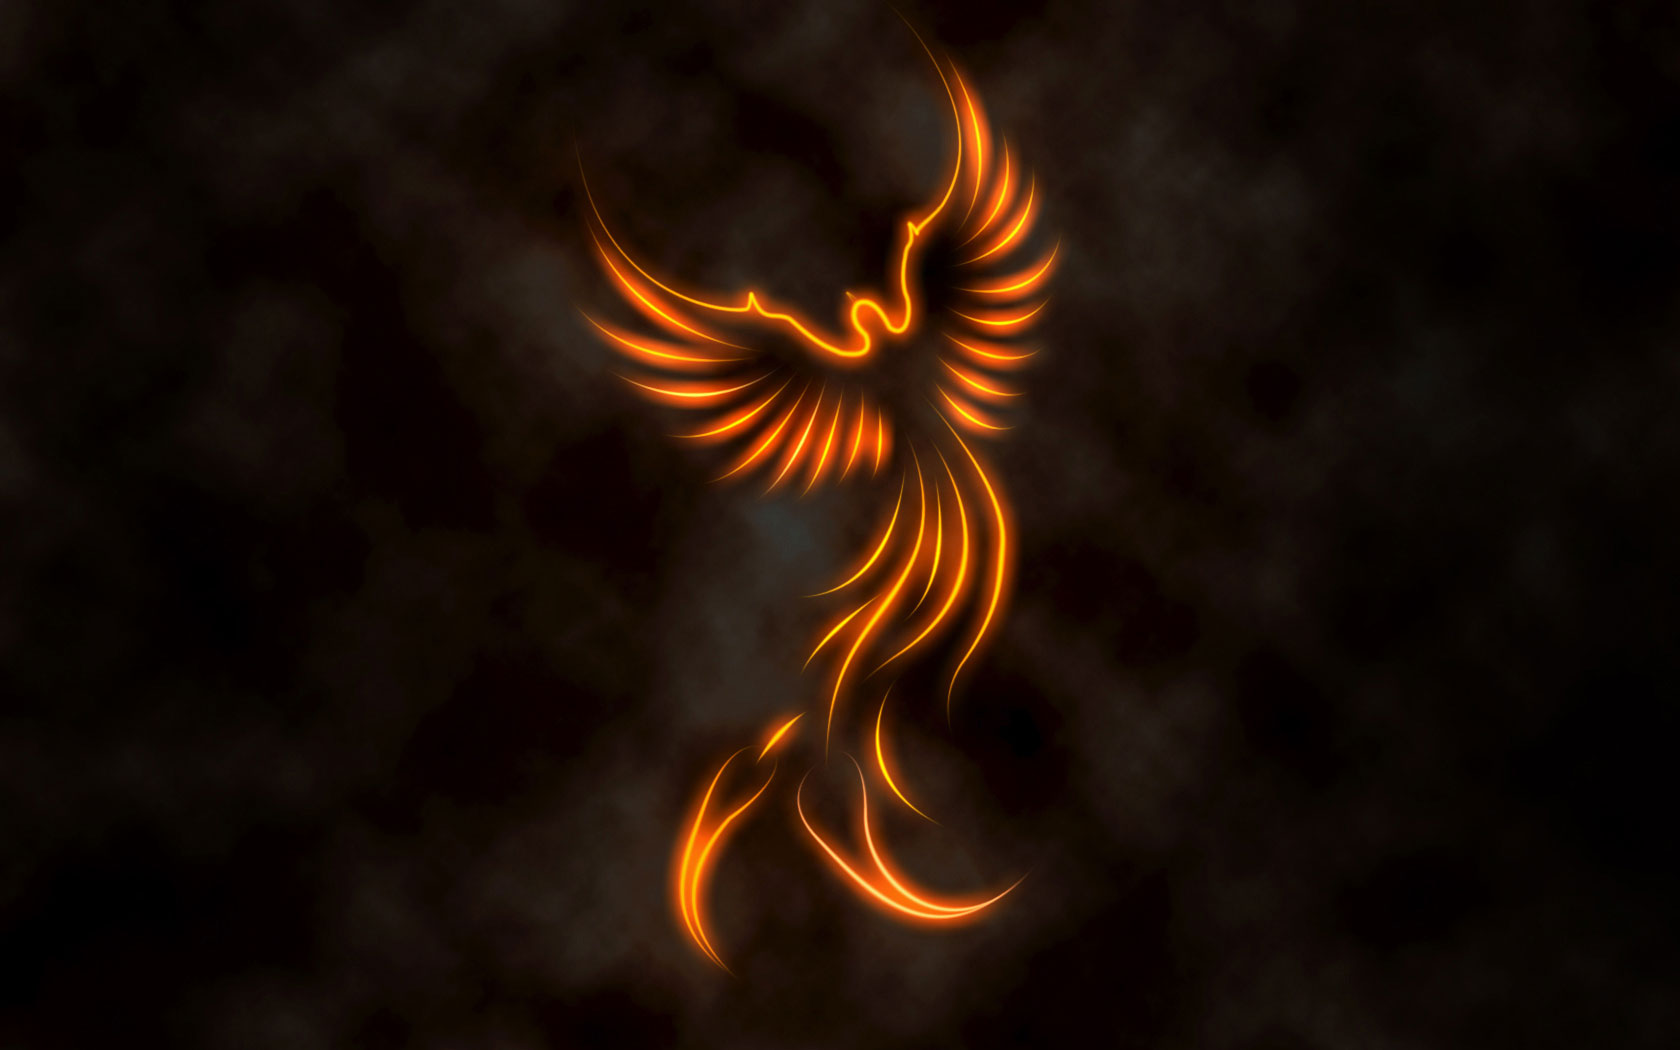 fire phoenix Wallpapers Hintergrnde 1680x1050 ID165420 1680x1050